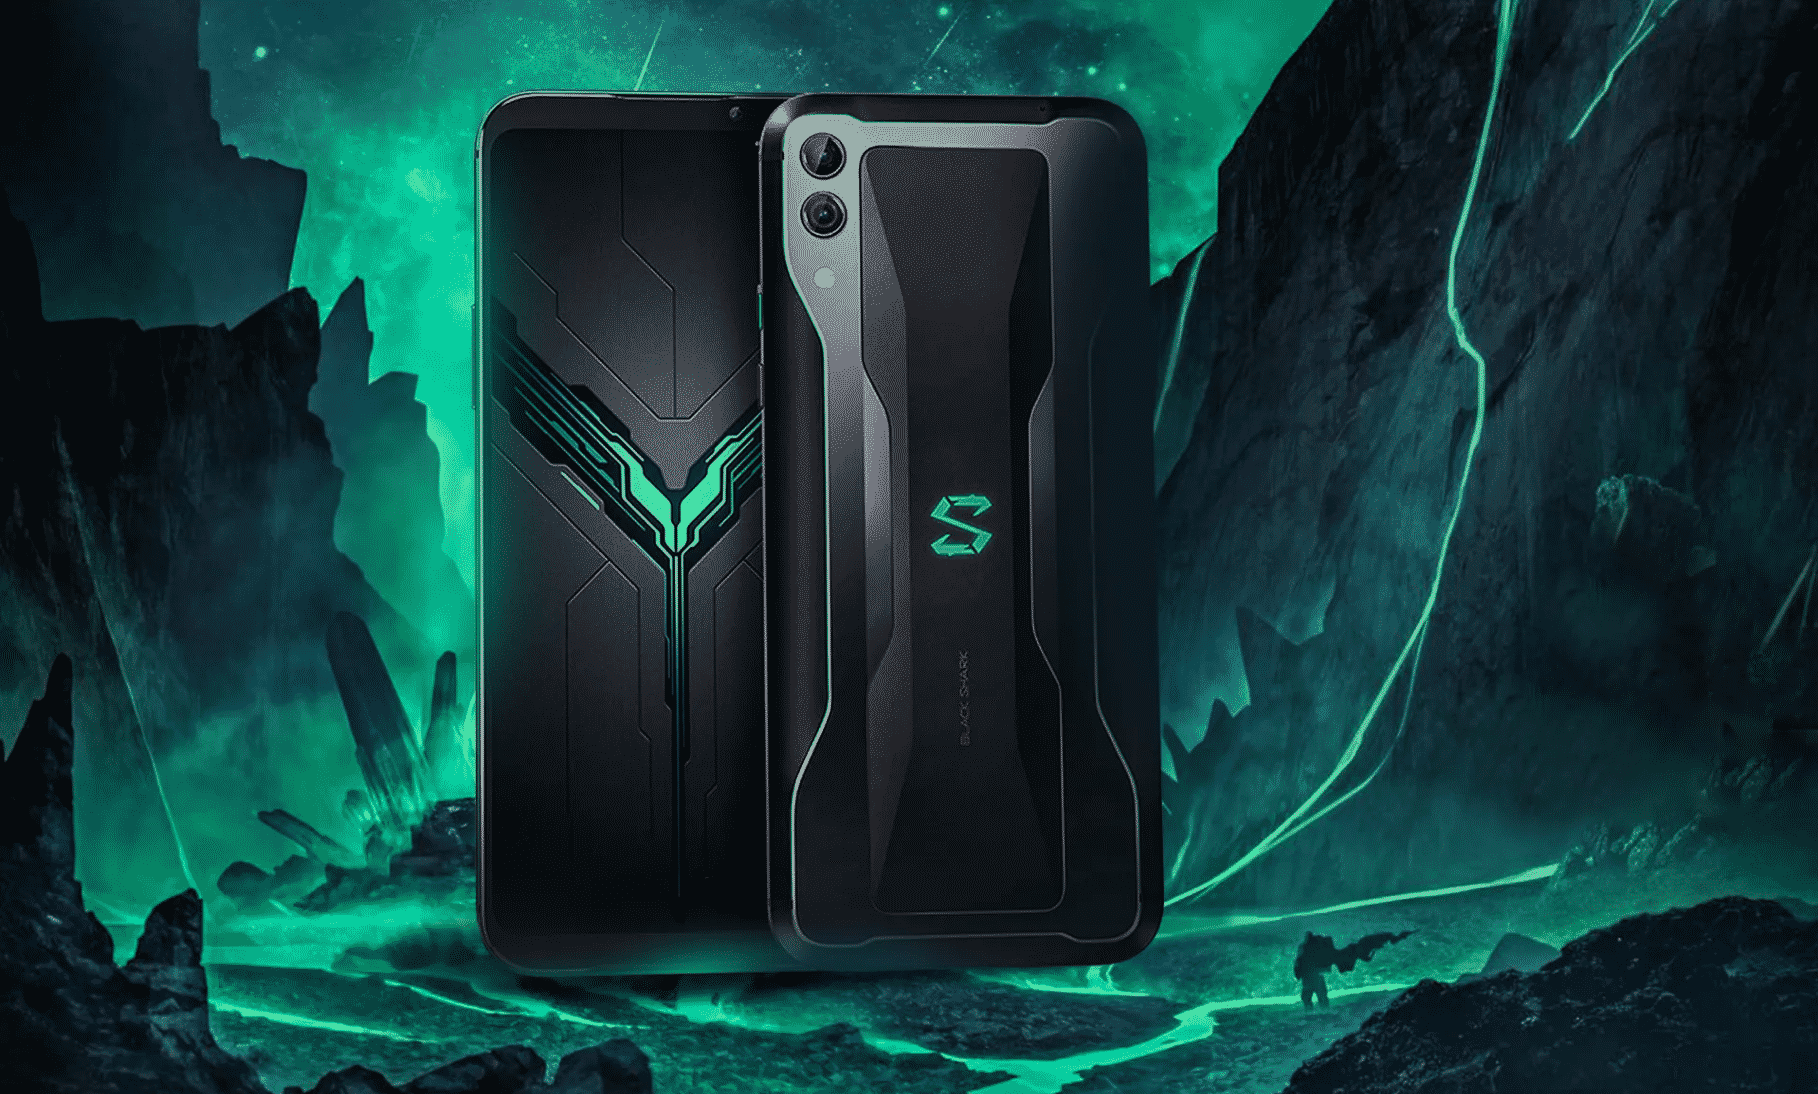 Xiaomi's Black Shark 3 5G will be the first smartphone to have 16GB of RAM